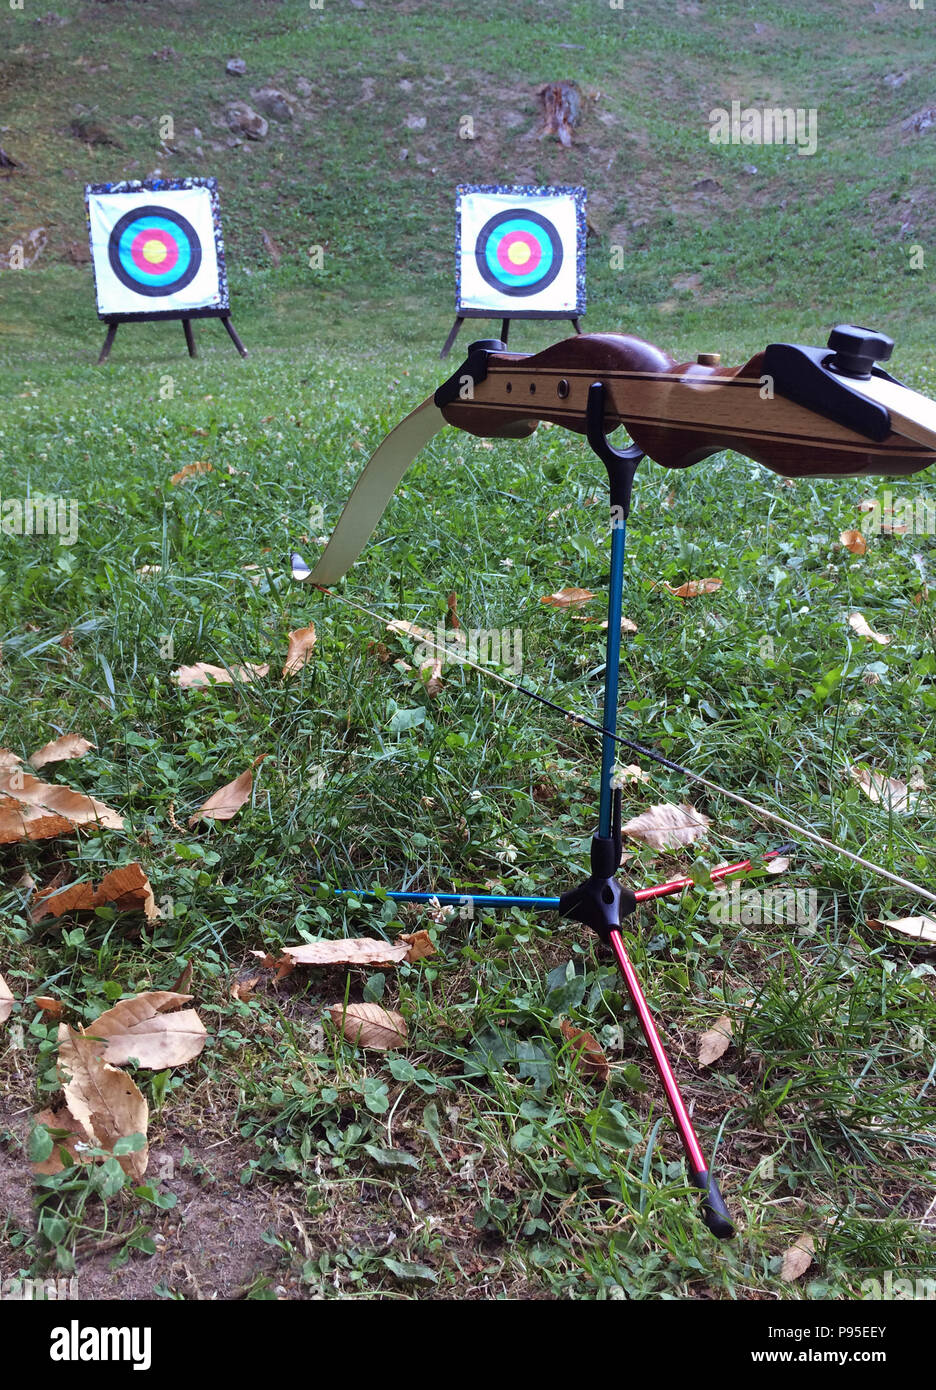 Resting bow with two targets in the background - Stock Image